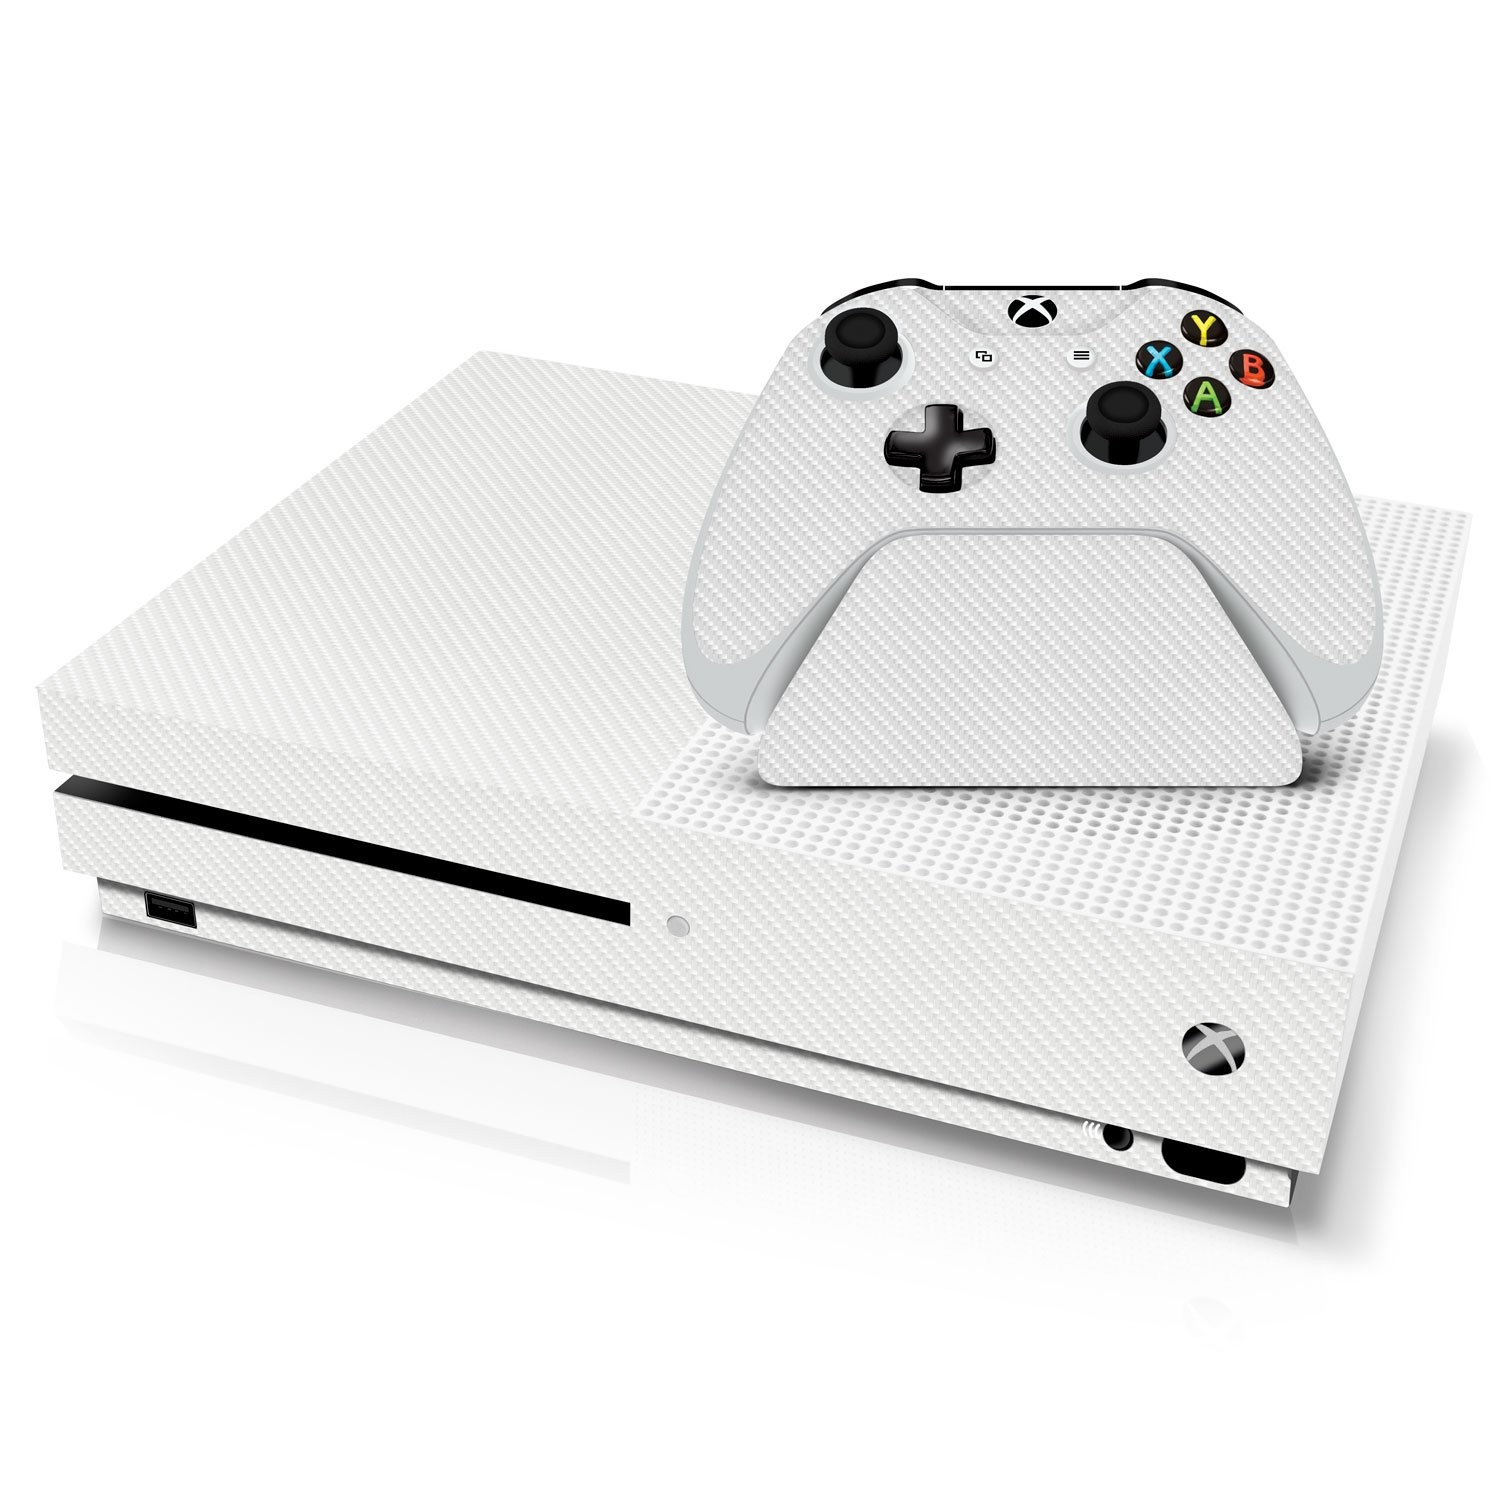 White Carbon Fiber - Xbox One S Console, Controller and Stand Skin Pack - Genuine 3M